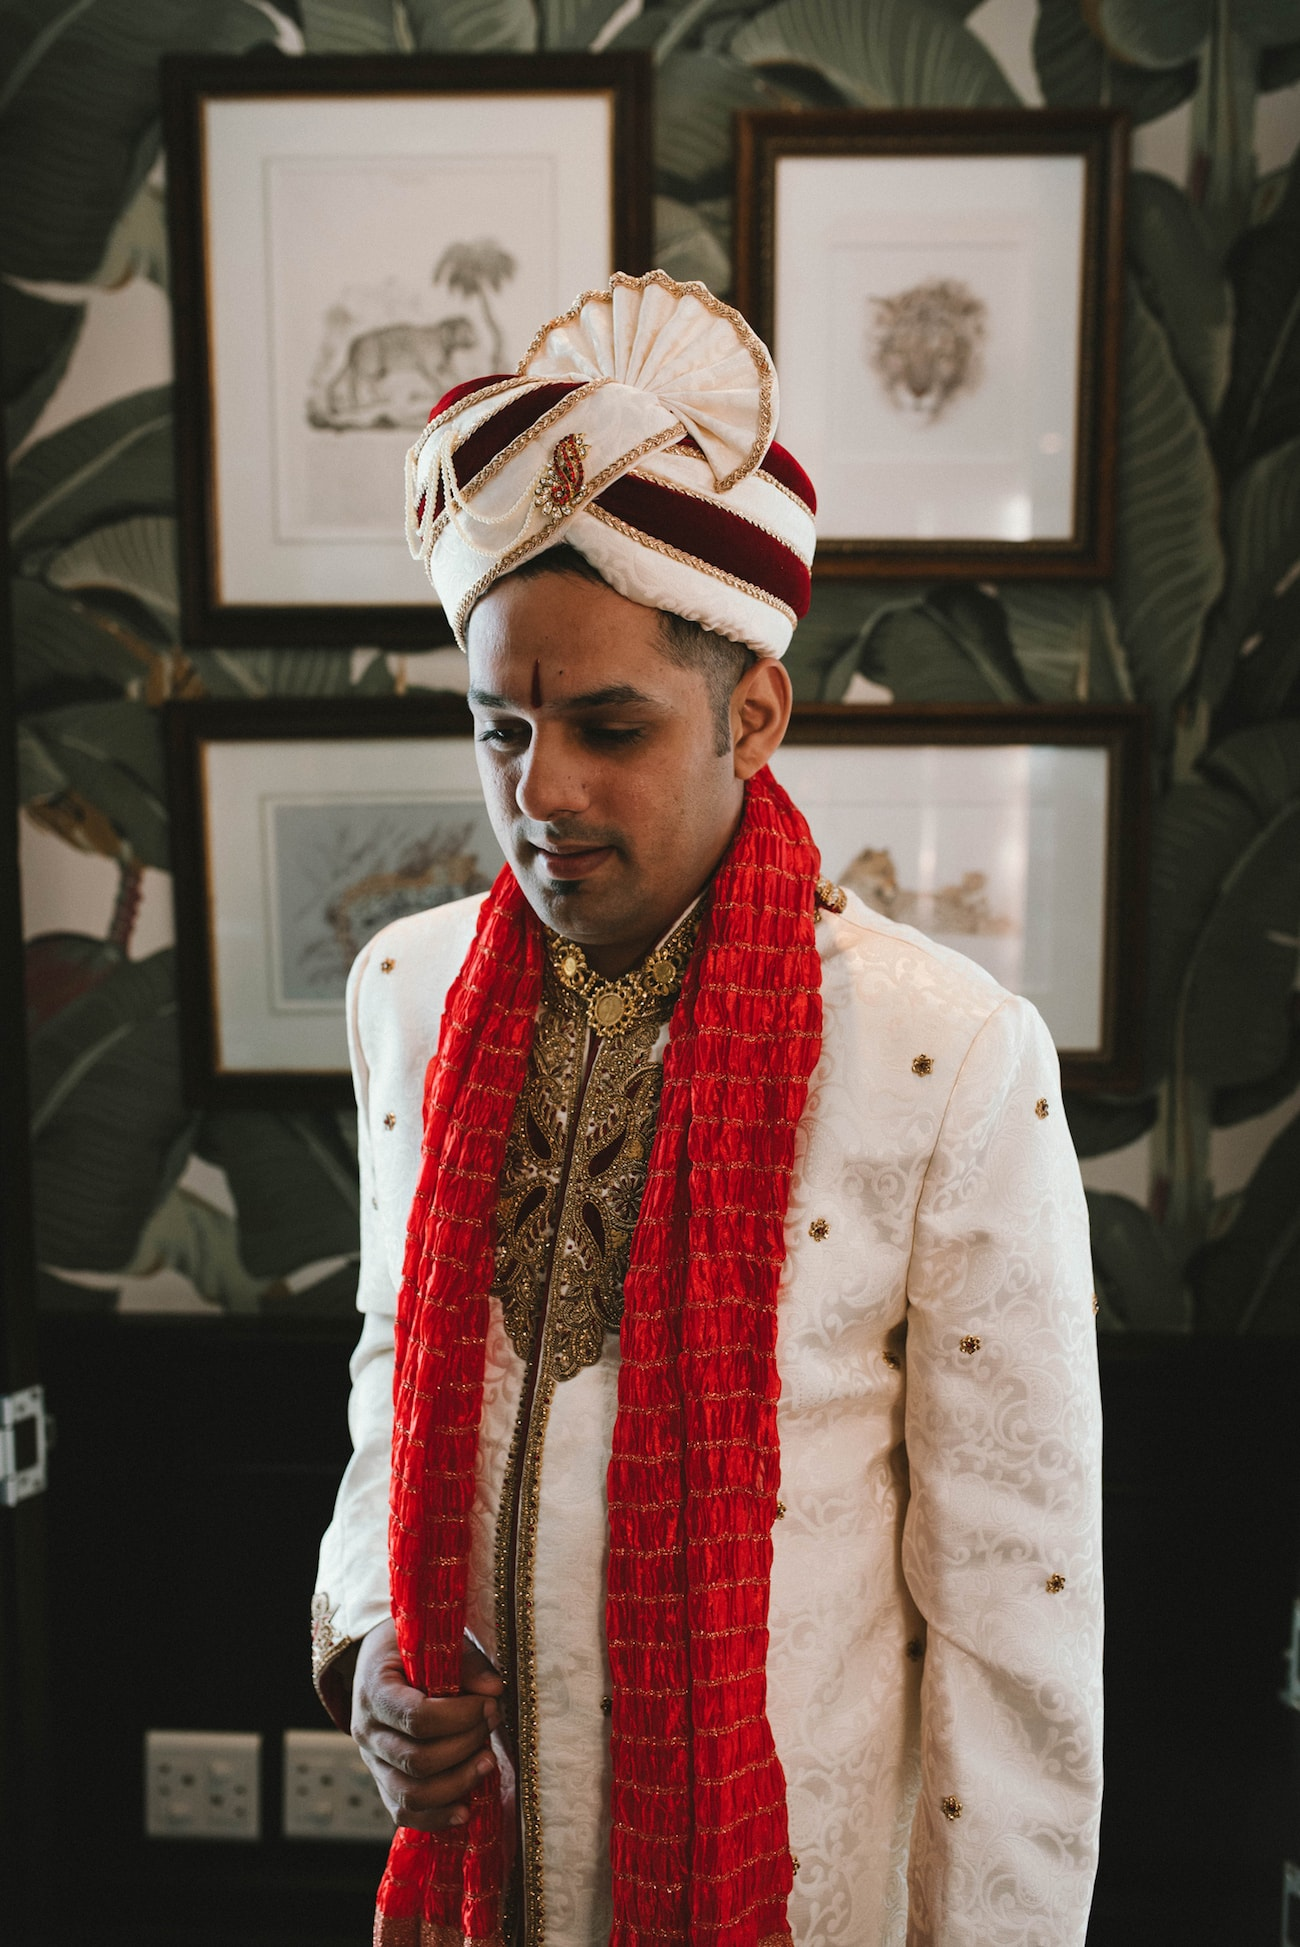 Groom in Traditional Achkan & Safa | Image: Claire Thomson